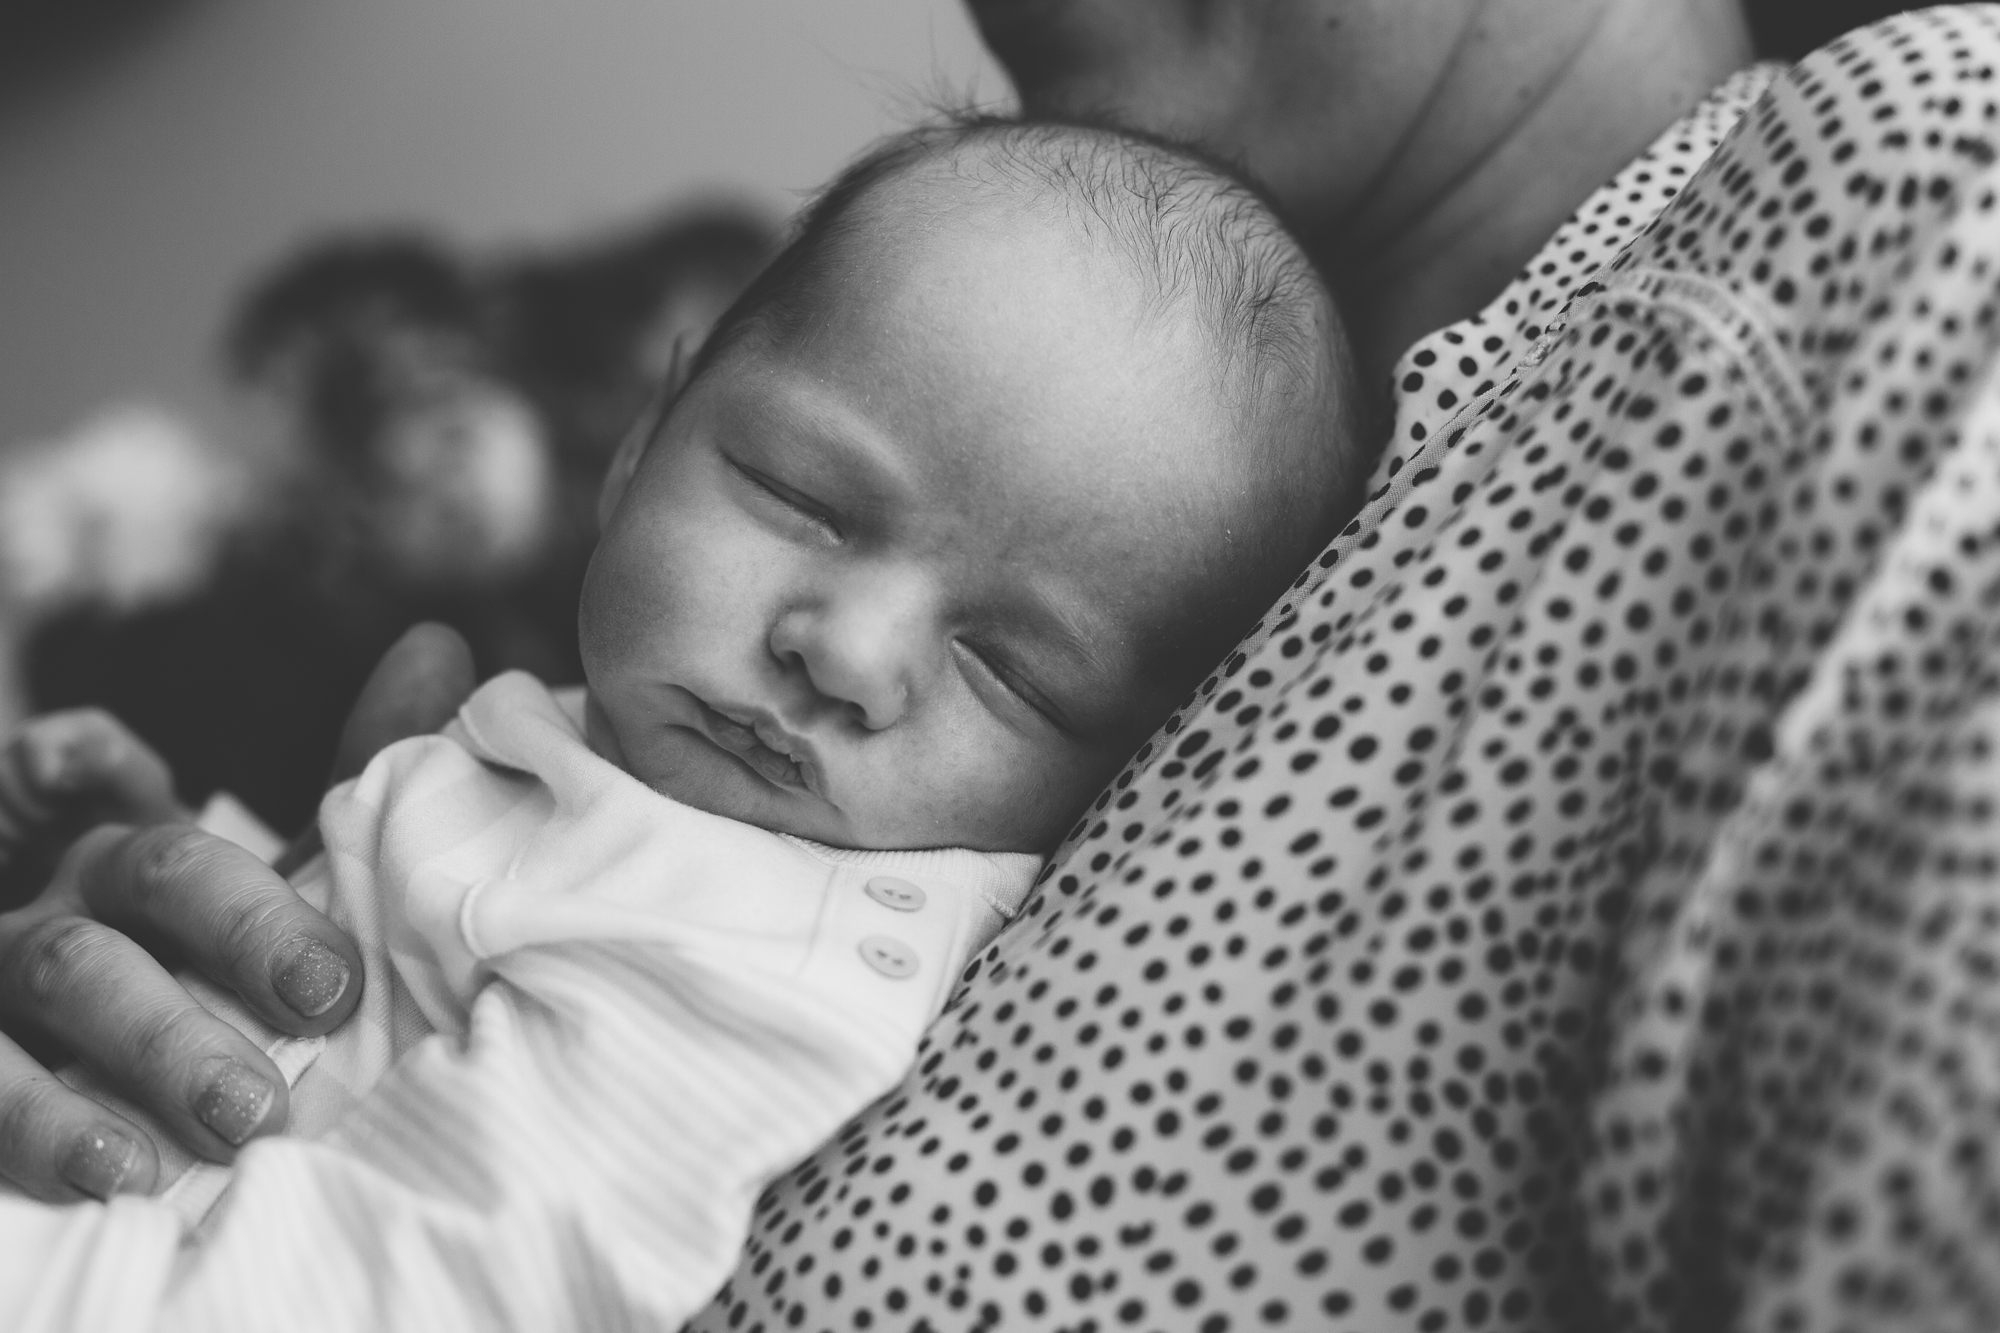 aberdeennewbornbabyphotographer (11 of 17).jpg